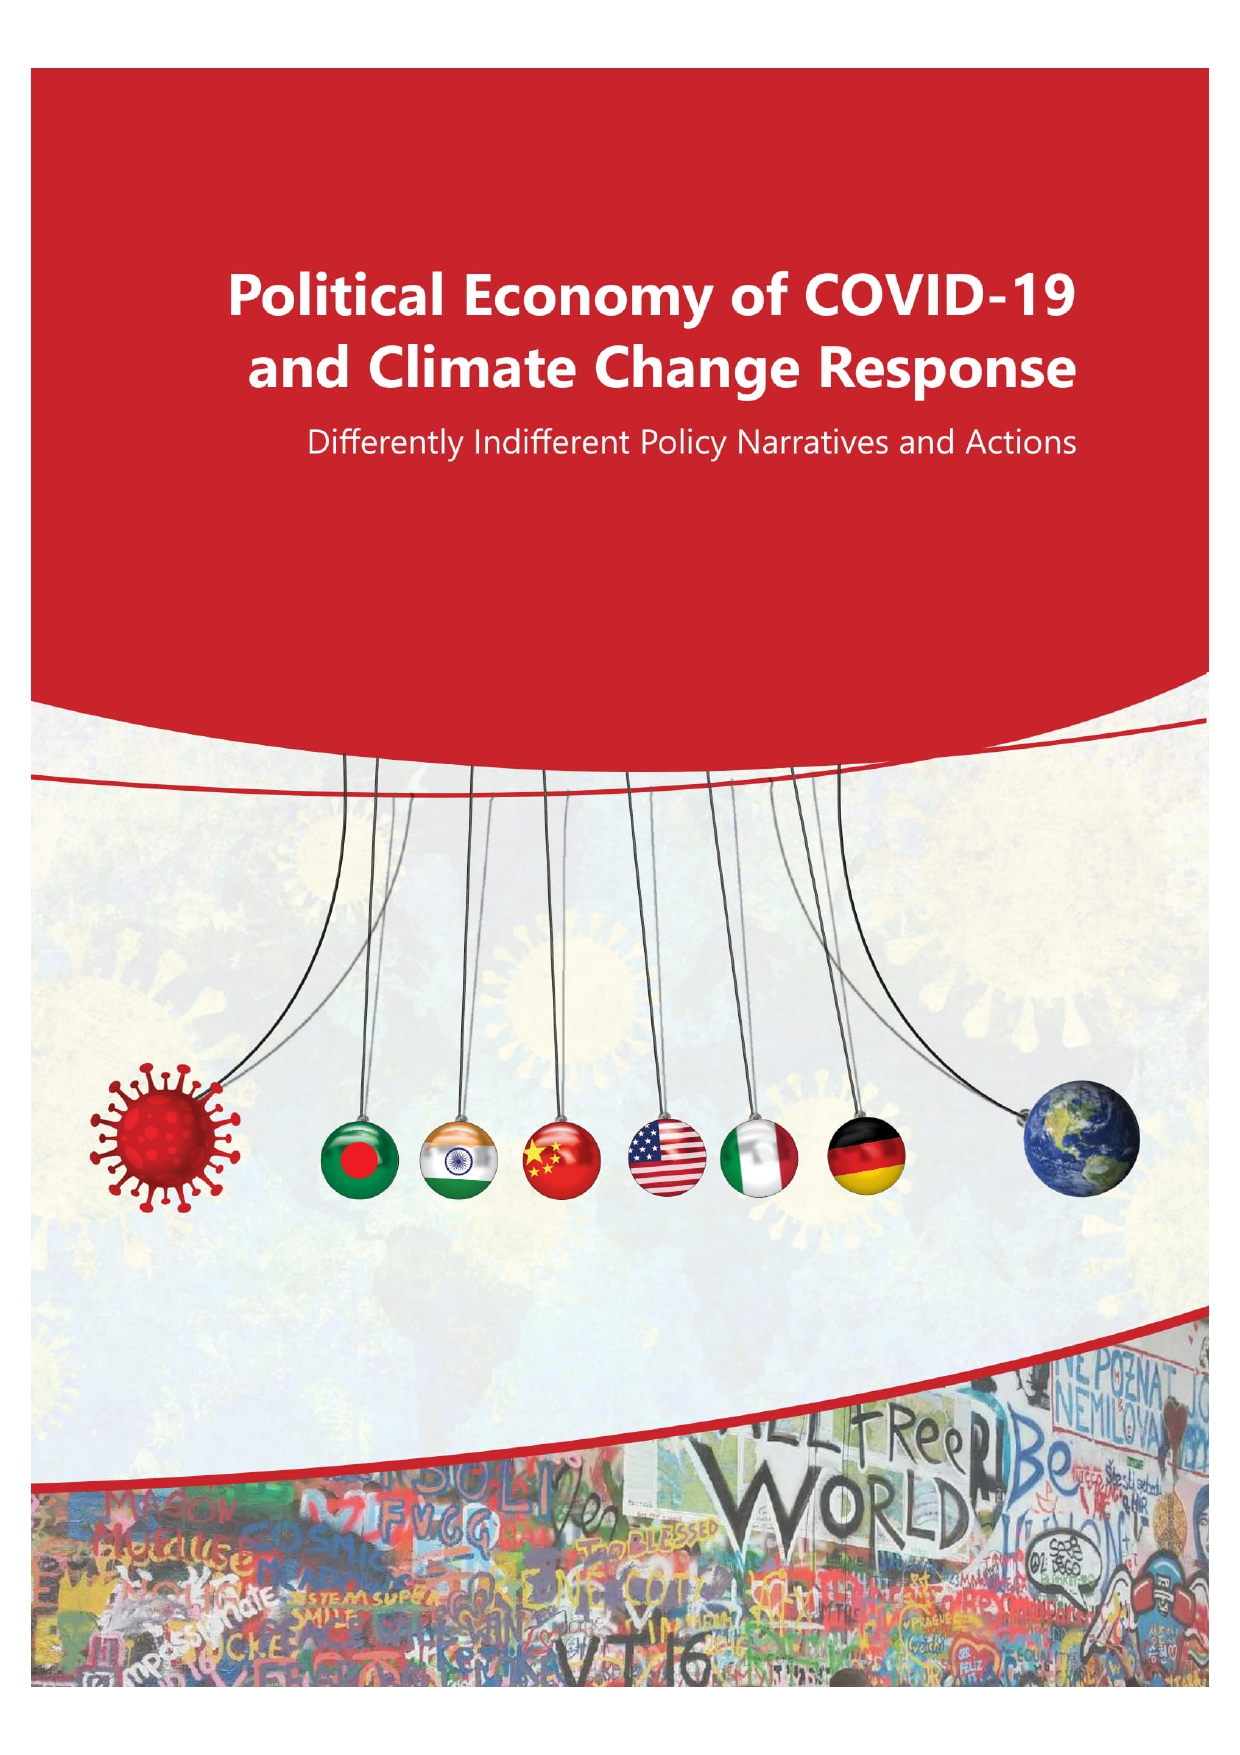 Political Economy of COVID-19 and Climate Change Response